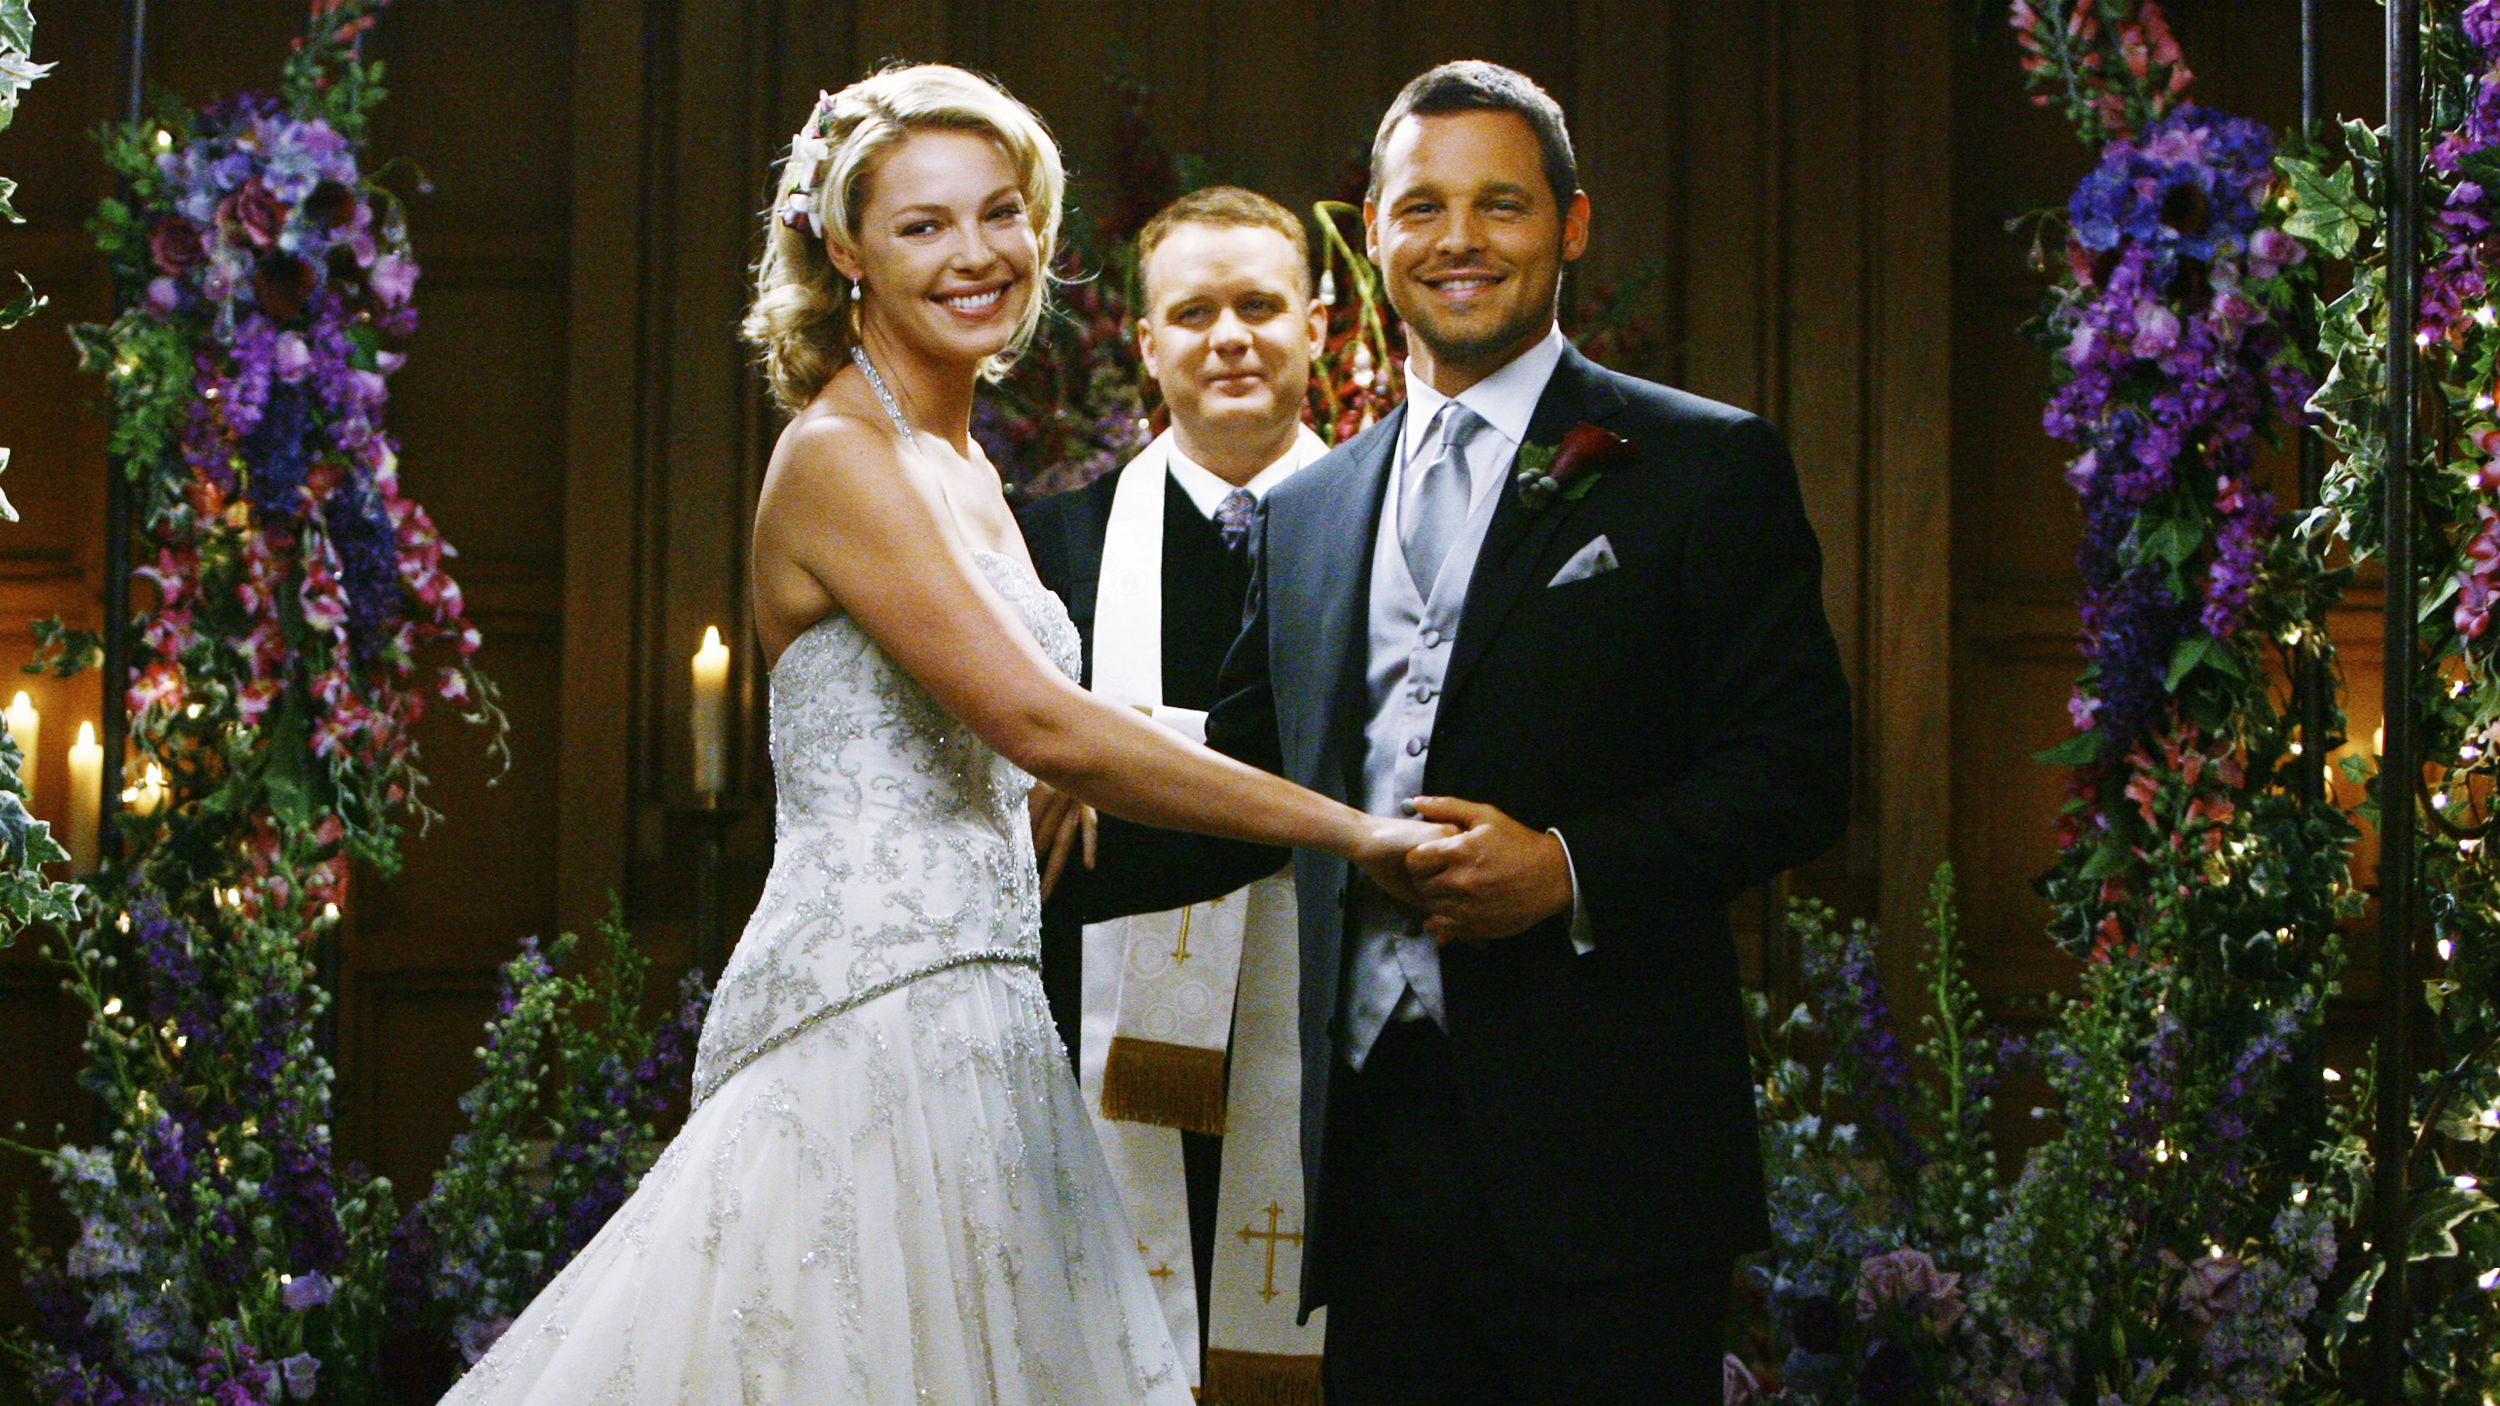 greys anatomy every wedding ranked from worst to best